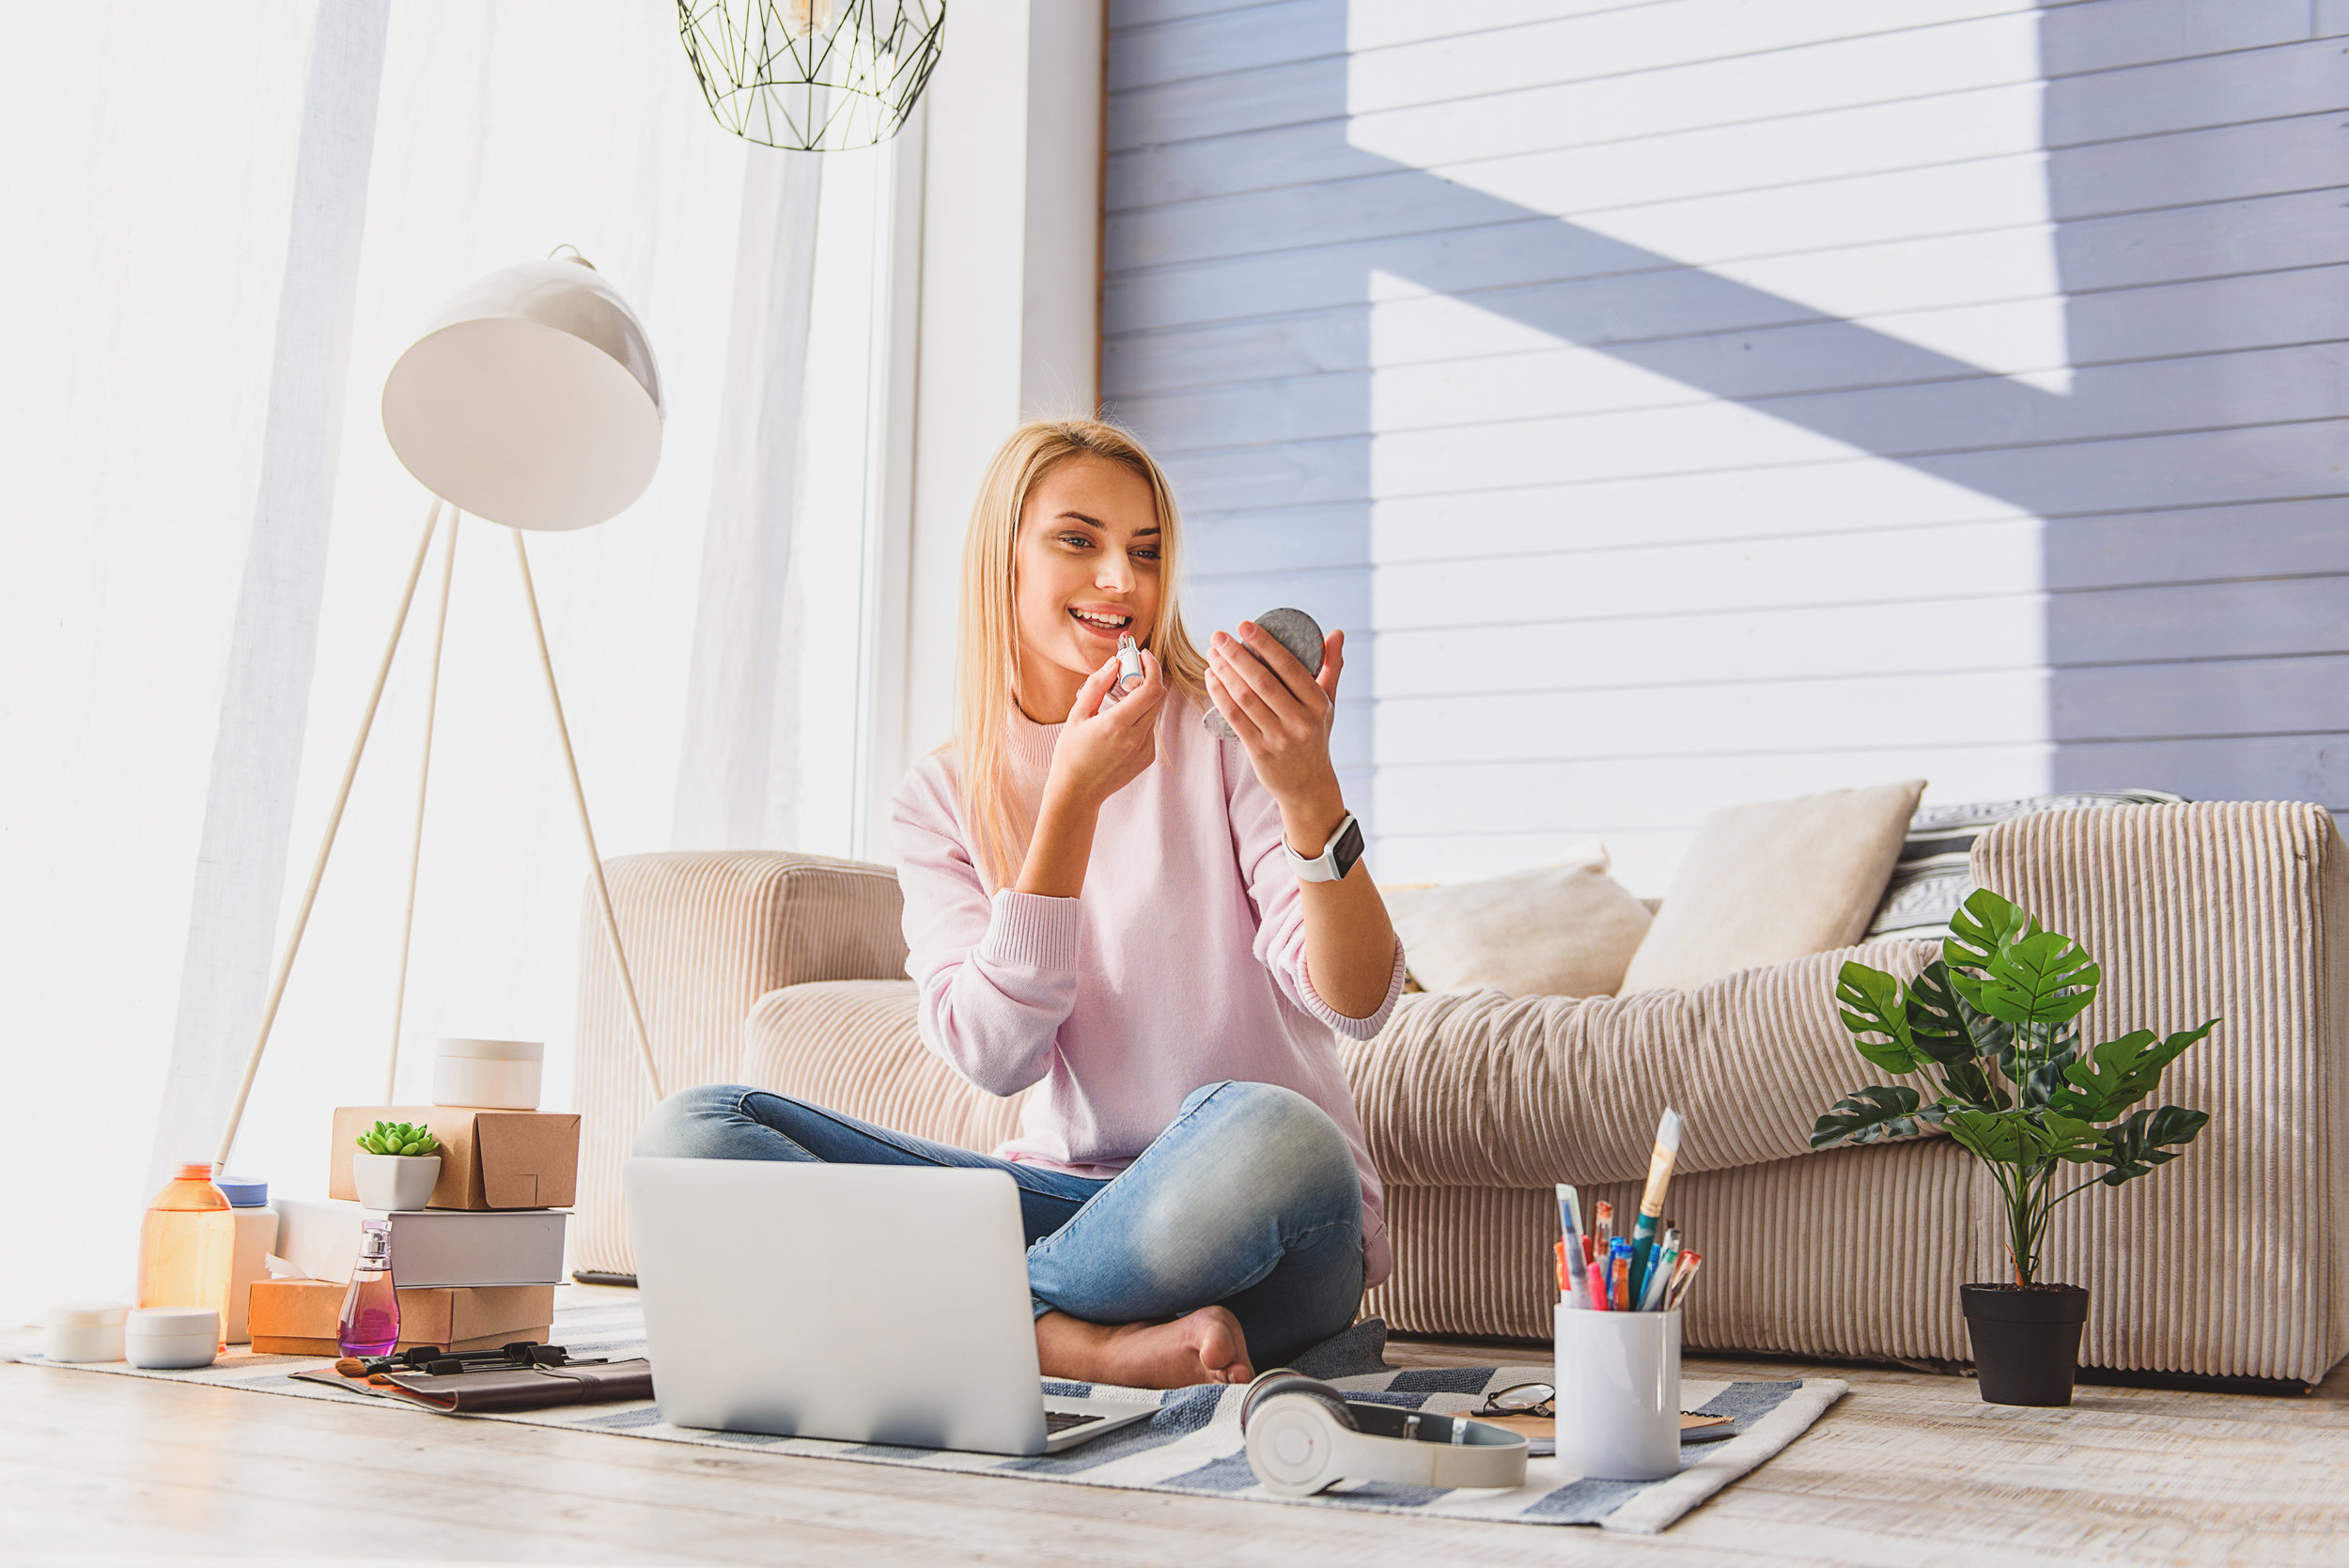 VirtualONE-ON-ONE - No matter where you are in the world, you can benefit from Maris' expertise to give your look new life, at a time that works for you!All you need is an internet connection and a device with a webcam.